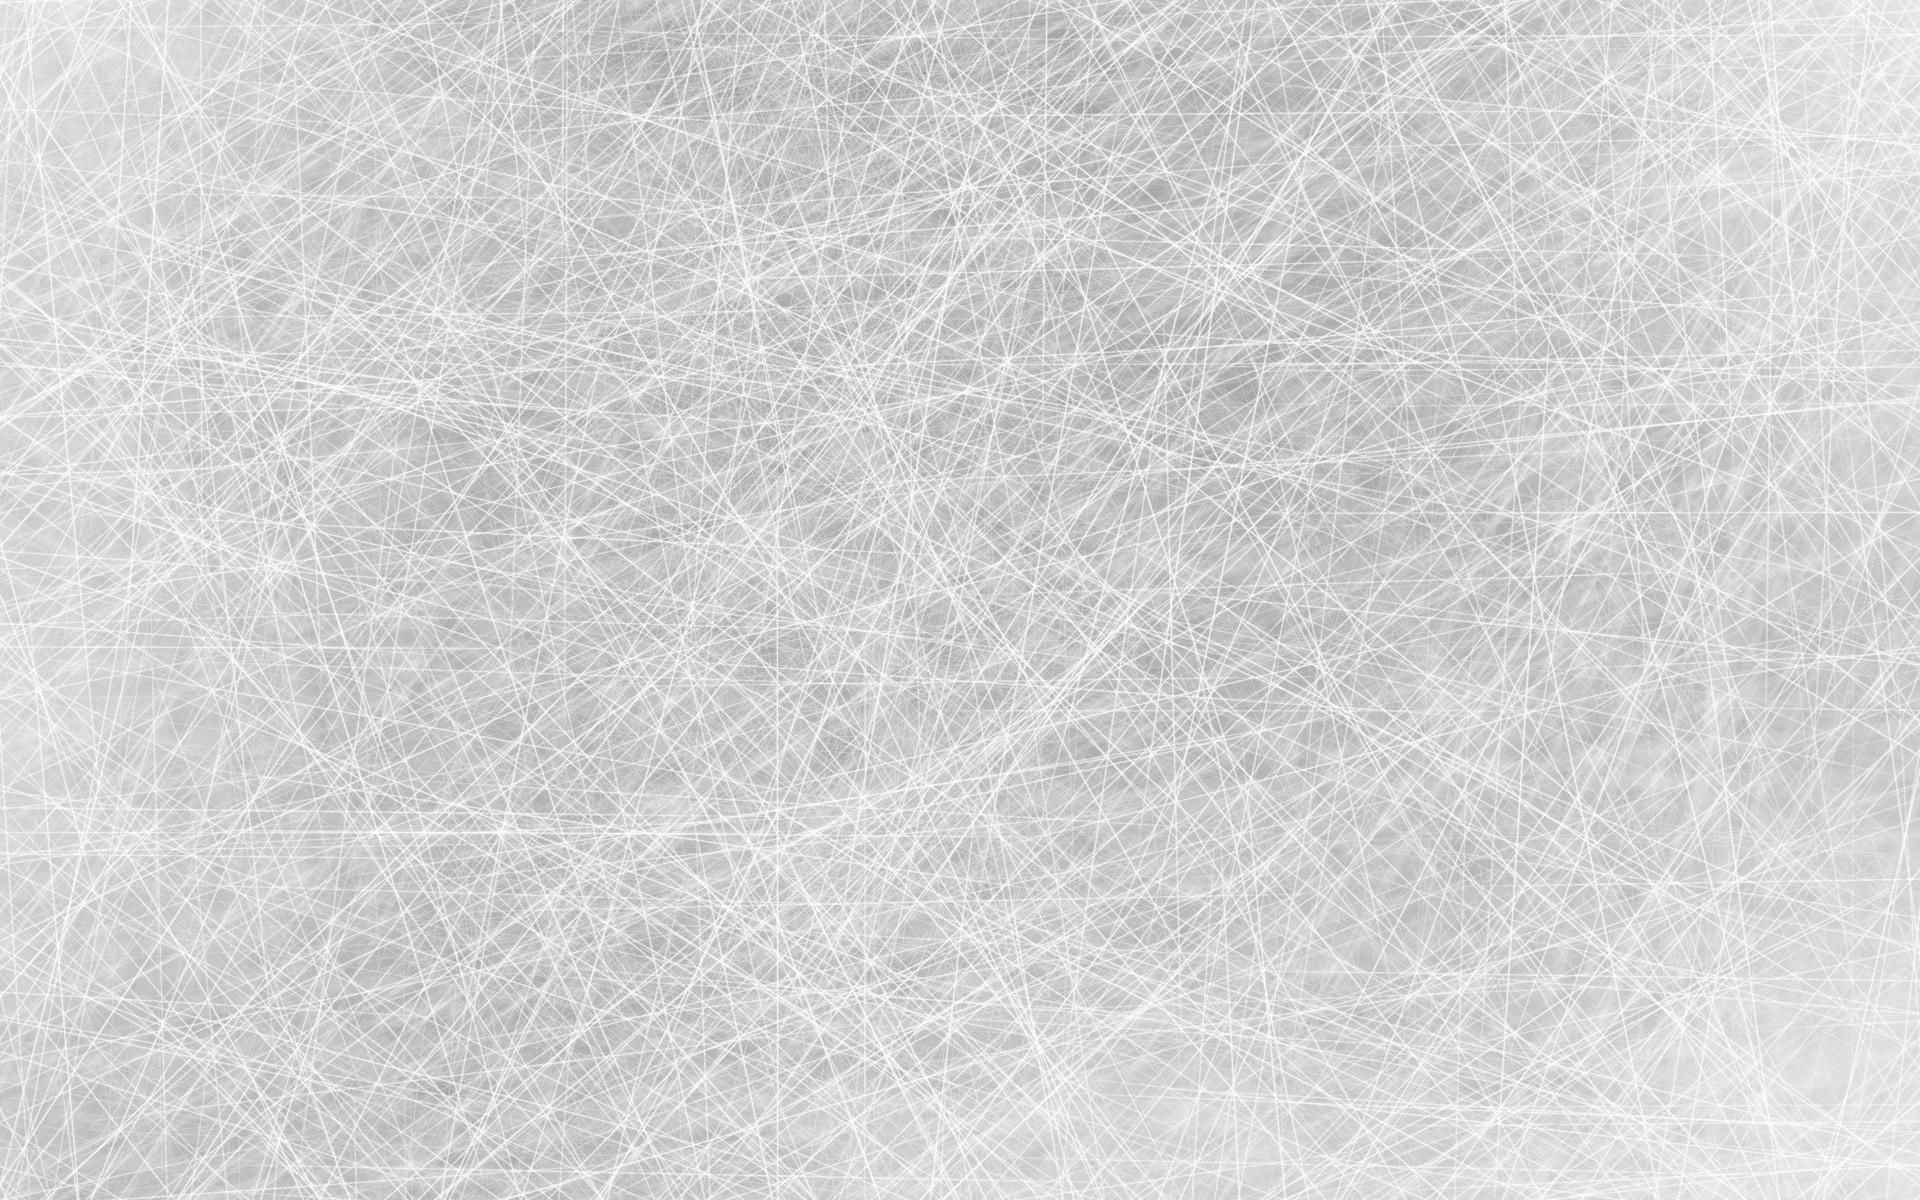 White Texture Hd Backgrounds Textured Background White Texture